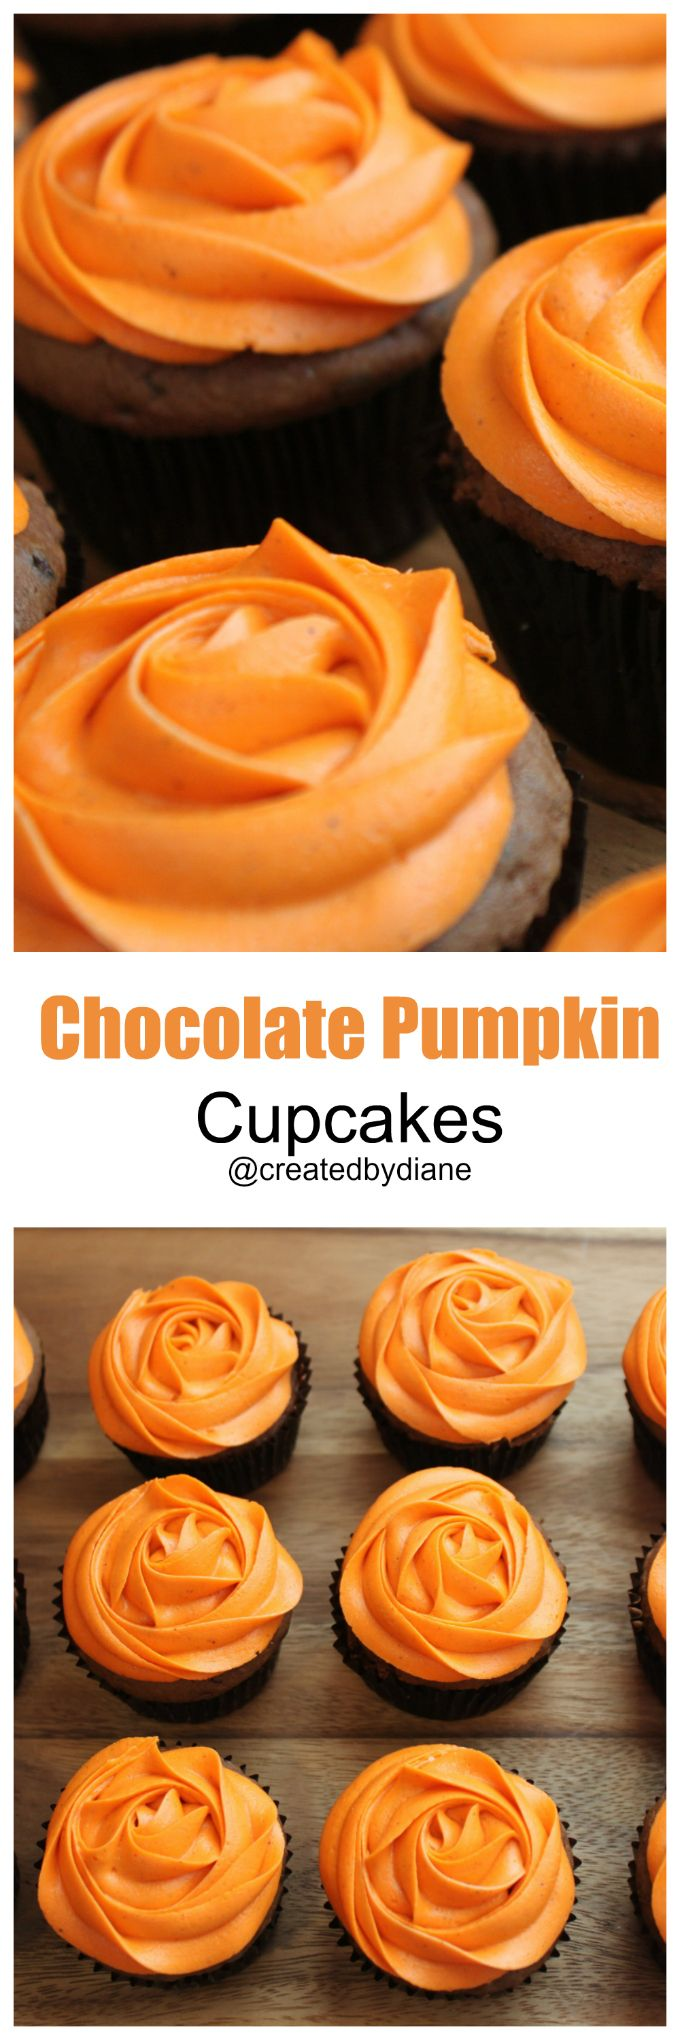 chocolate pumpkin cupcakes from @createdbydiane